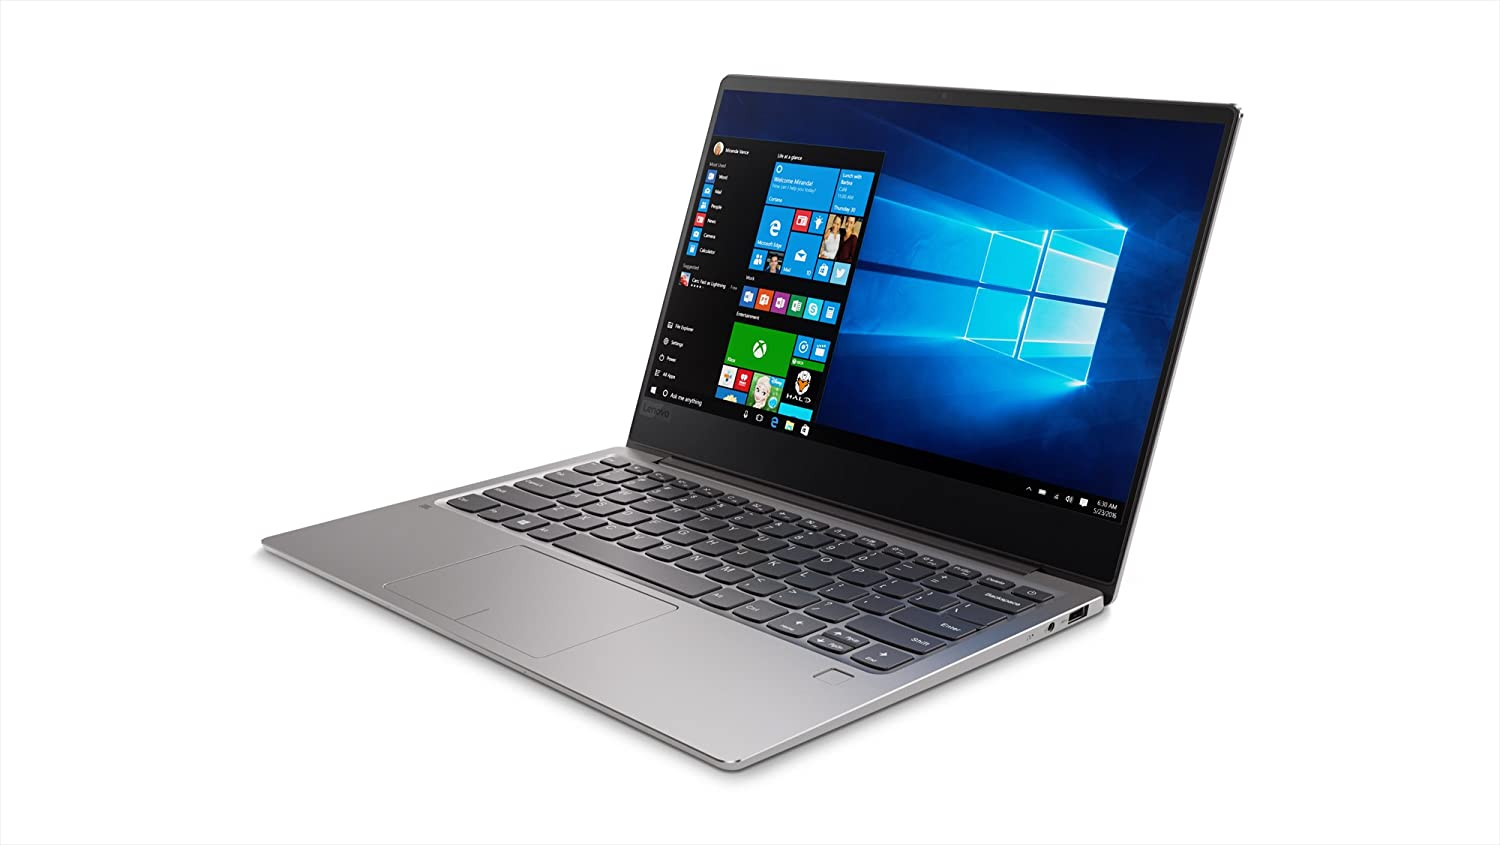 Lenovo Ideapad 720S 13.3-Inch Laptop (Intel Core i7-8550U Processor, 8GB RAM, 1TB PCle SSD, Integrated Intel UHD Graphics 620, Iron Grey) 81BV008KUS